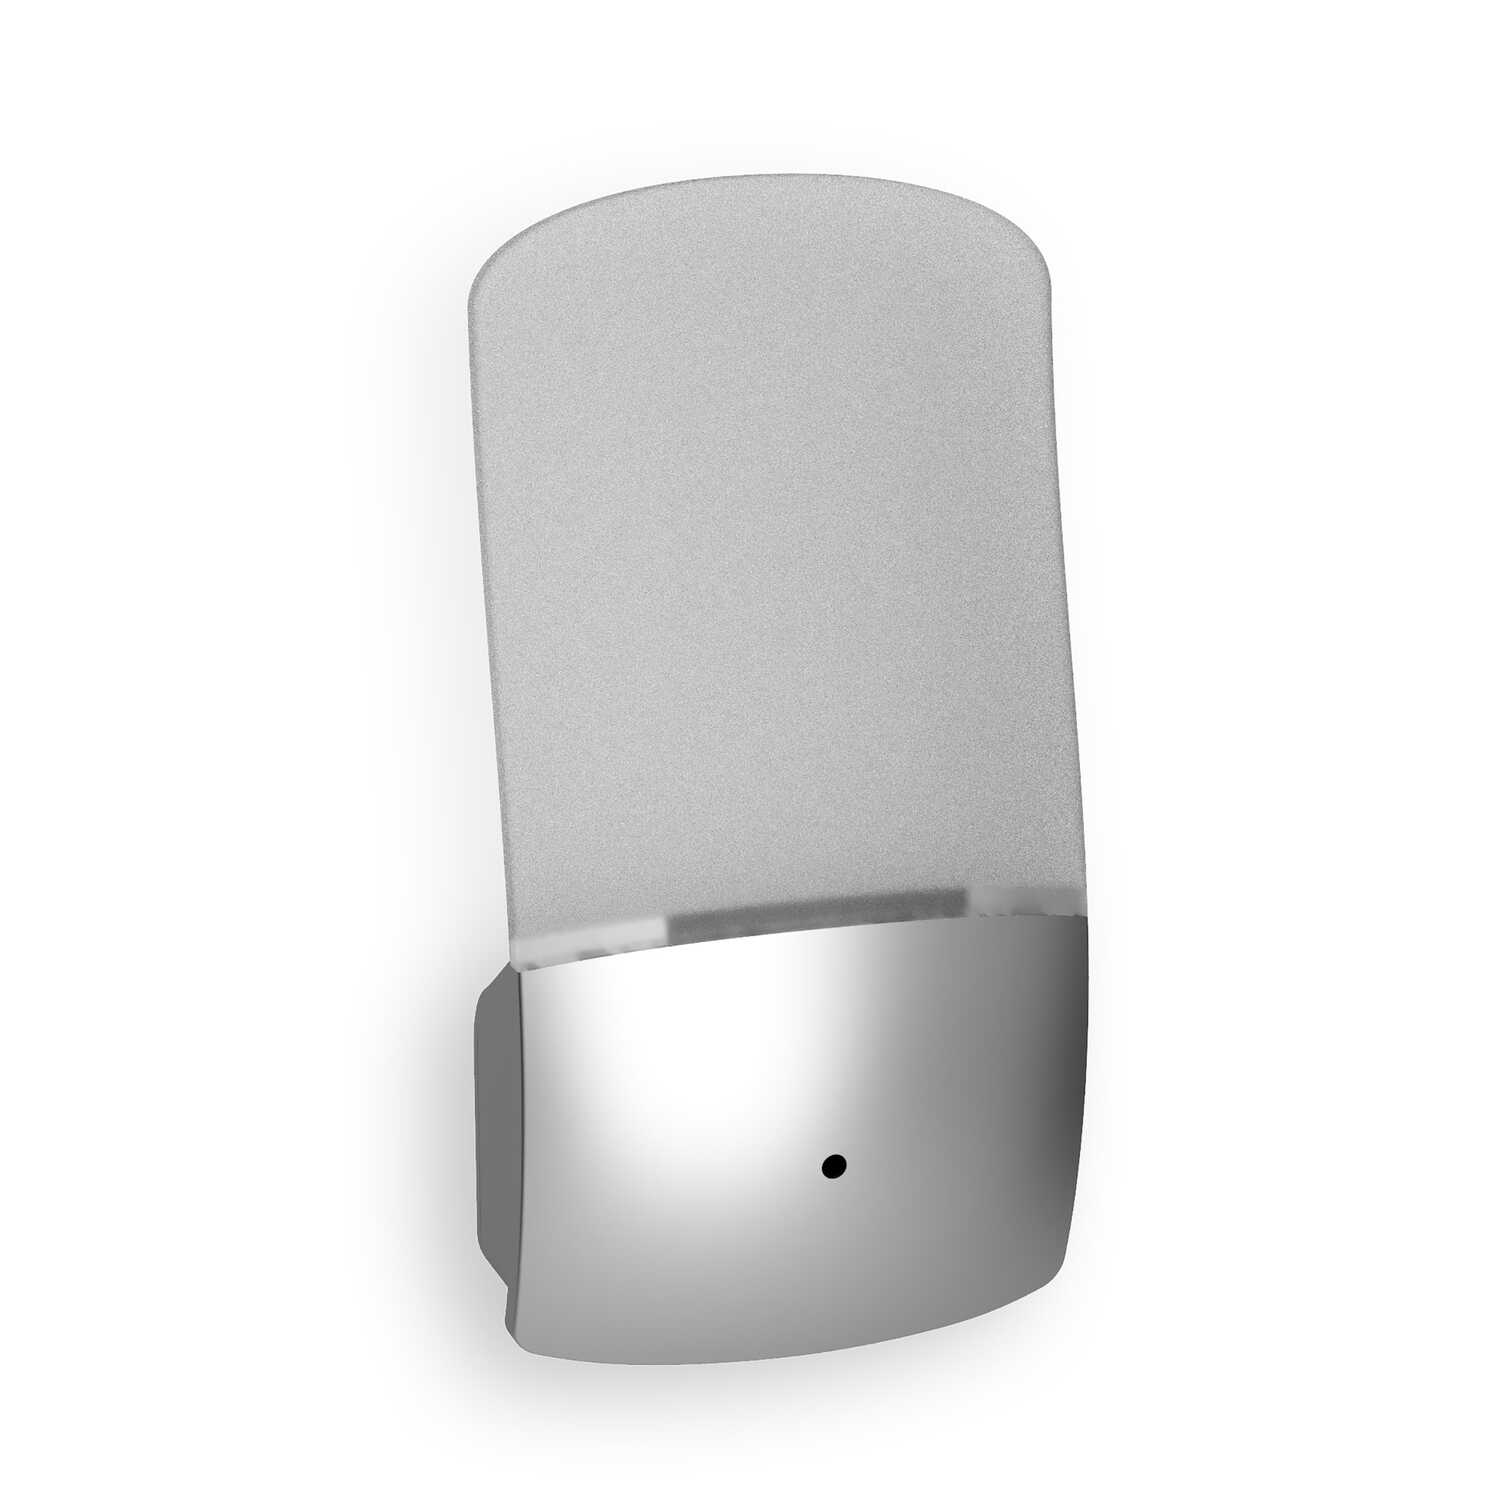 Westek  Automatic  Plug-in  Ola Curve  LED  Night Light